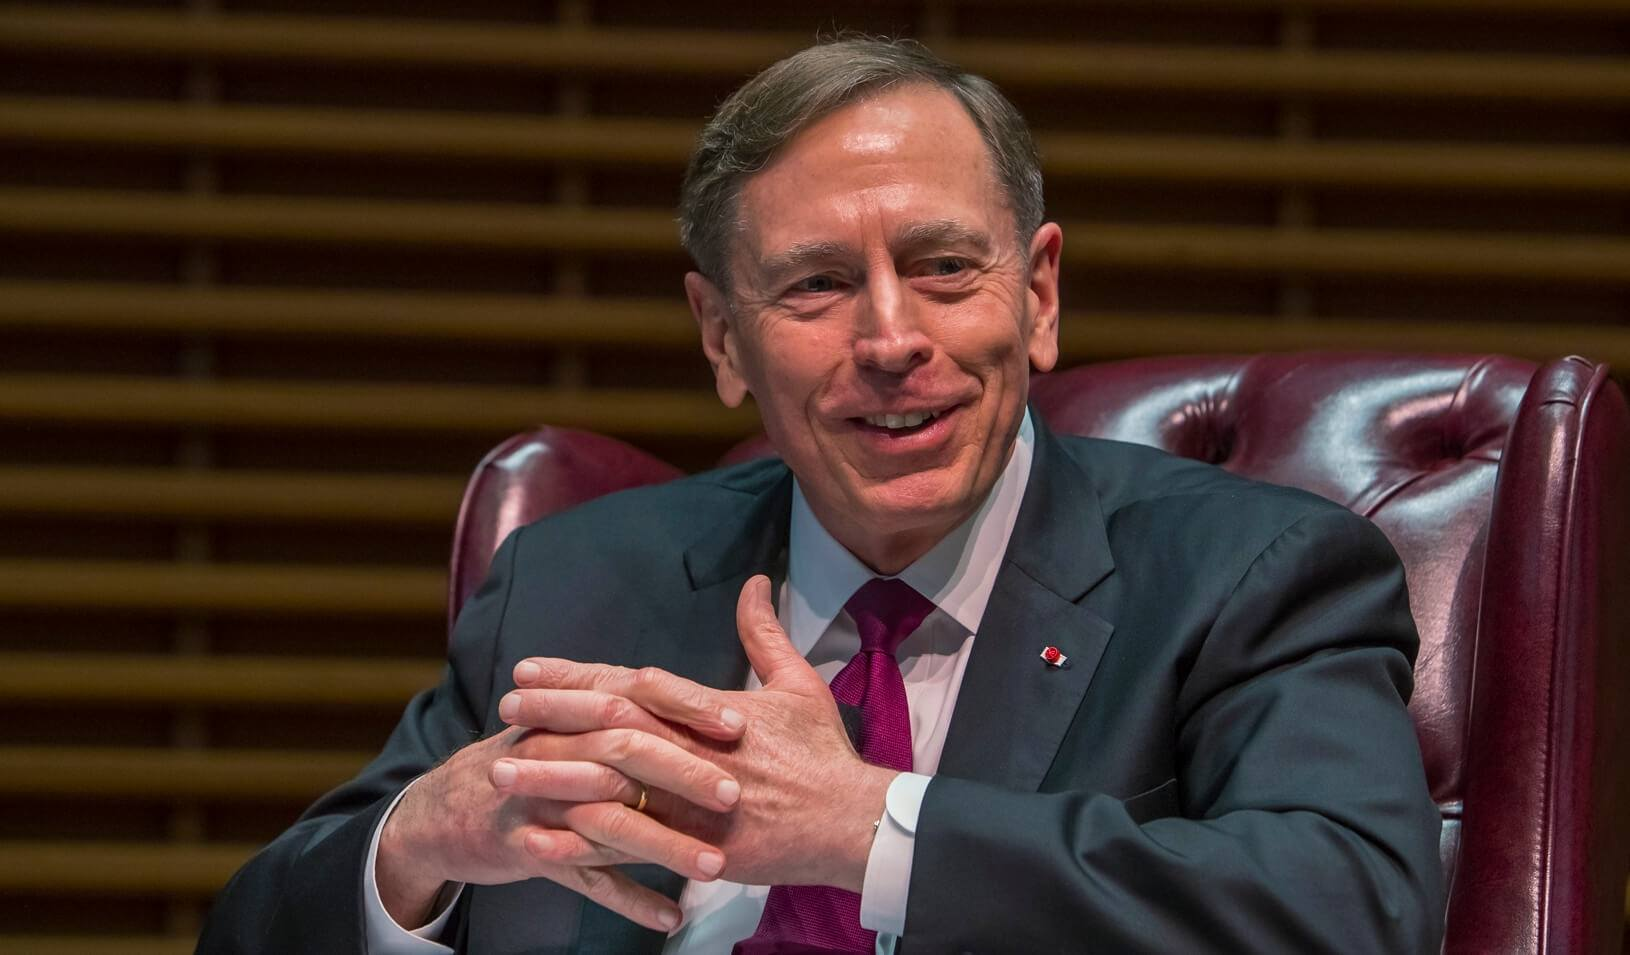 Gen. David Petraeus: Four Tasks of a Strategic Leader